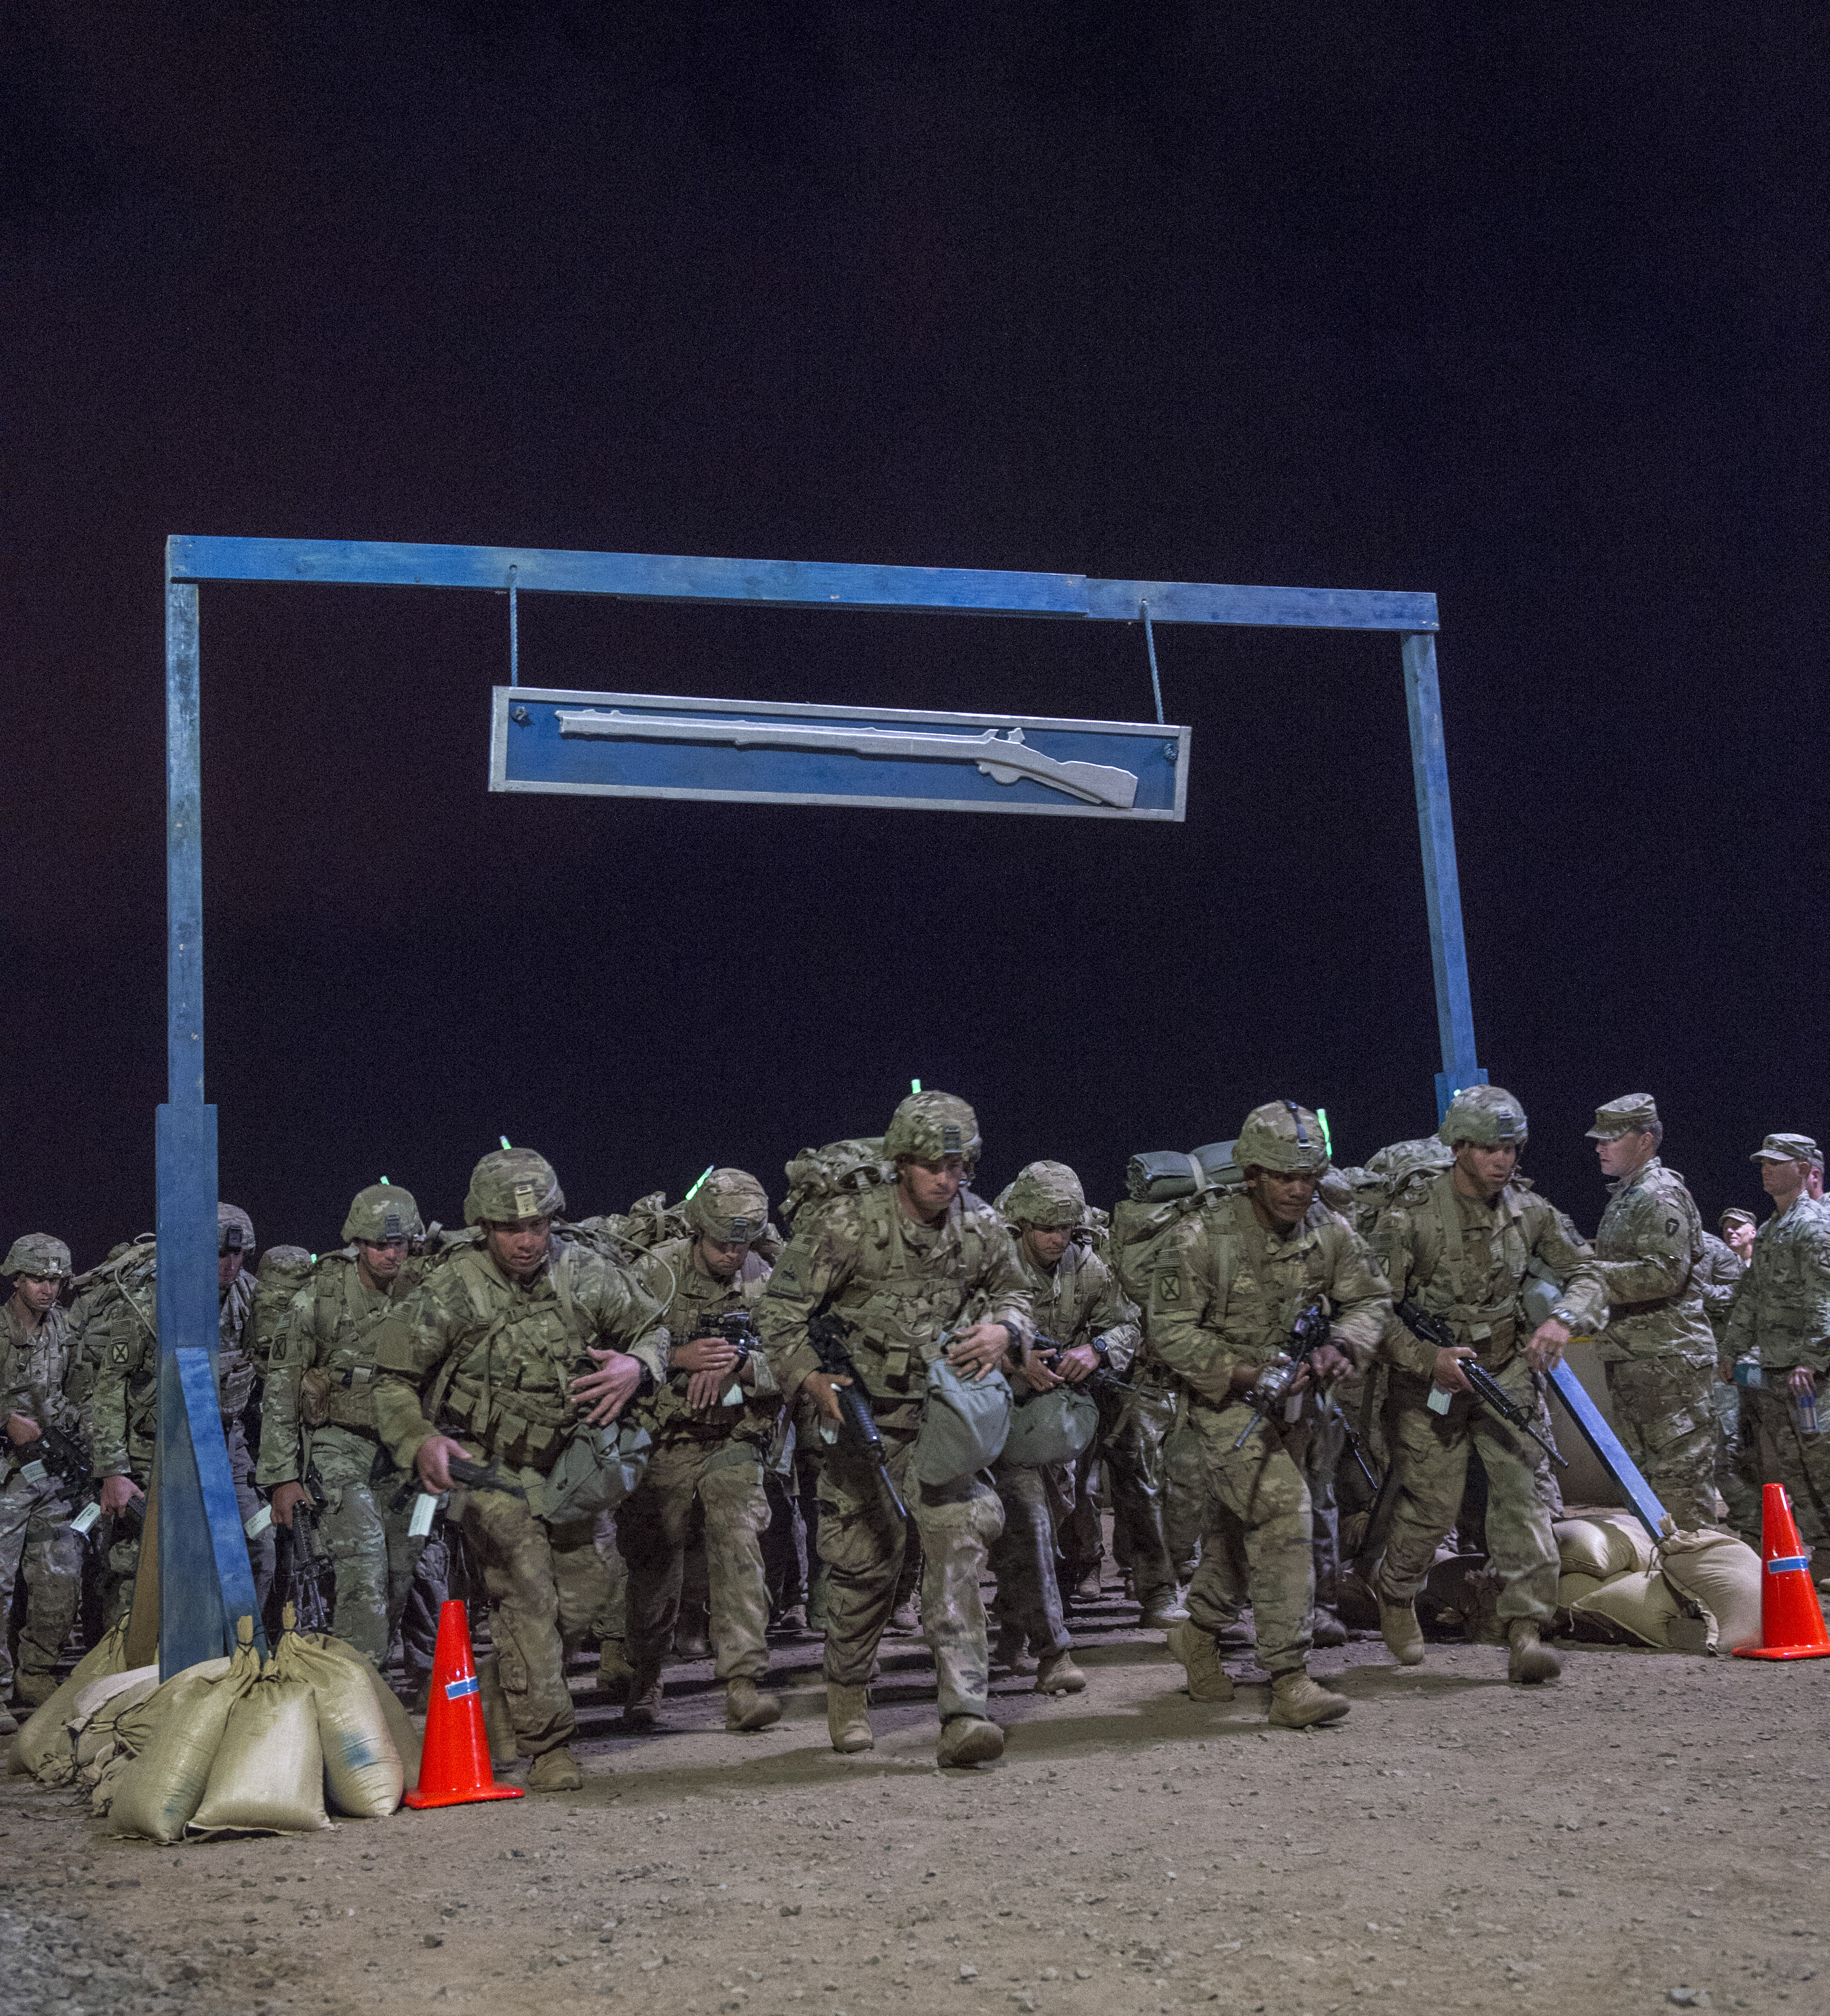 U.S. Army Soldiers assigned to Combined Joint Task Force - Horn of Africa begin the 12-mile march during an Expert Infantryman Badge evaluation at Camp Lemonnier, Djibouti, Feb. 2, 2018. After two weeks of training and five days of testing, 50 Soldiers completed the process to earn the coveted special skills badge that requires Soldiers to perform an Army Physical Fitness Test, day and night land navigation, a 12-mile forced march, and 30 individual tasks covering weapons, medical, and security patrol skills. (U.S. Air Force photo by Staff Sgt. Timothy Moore)